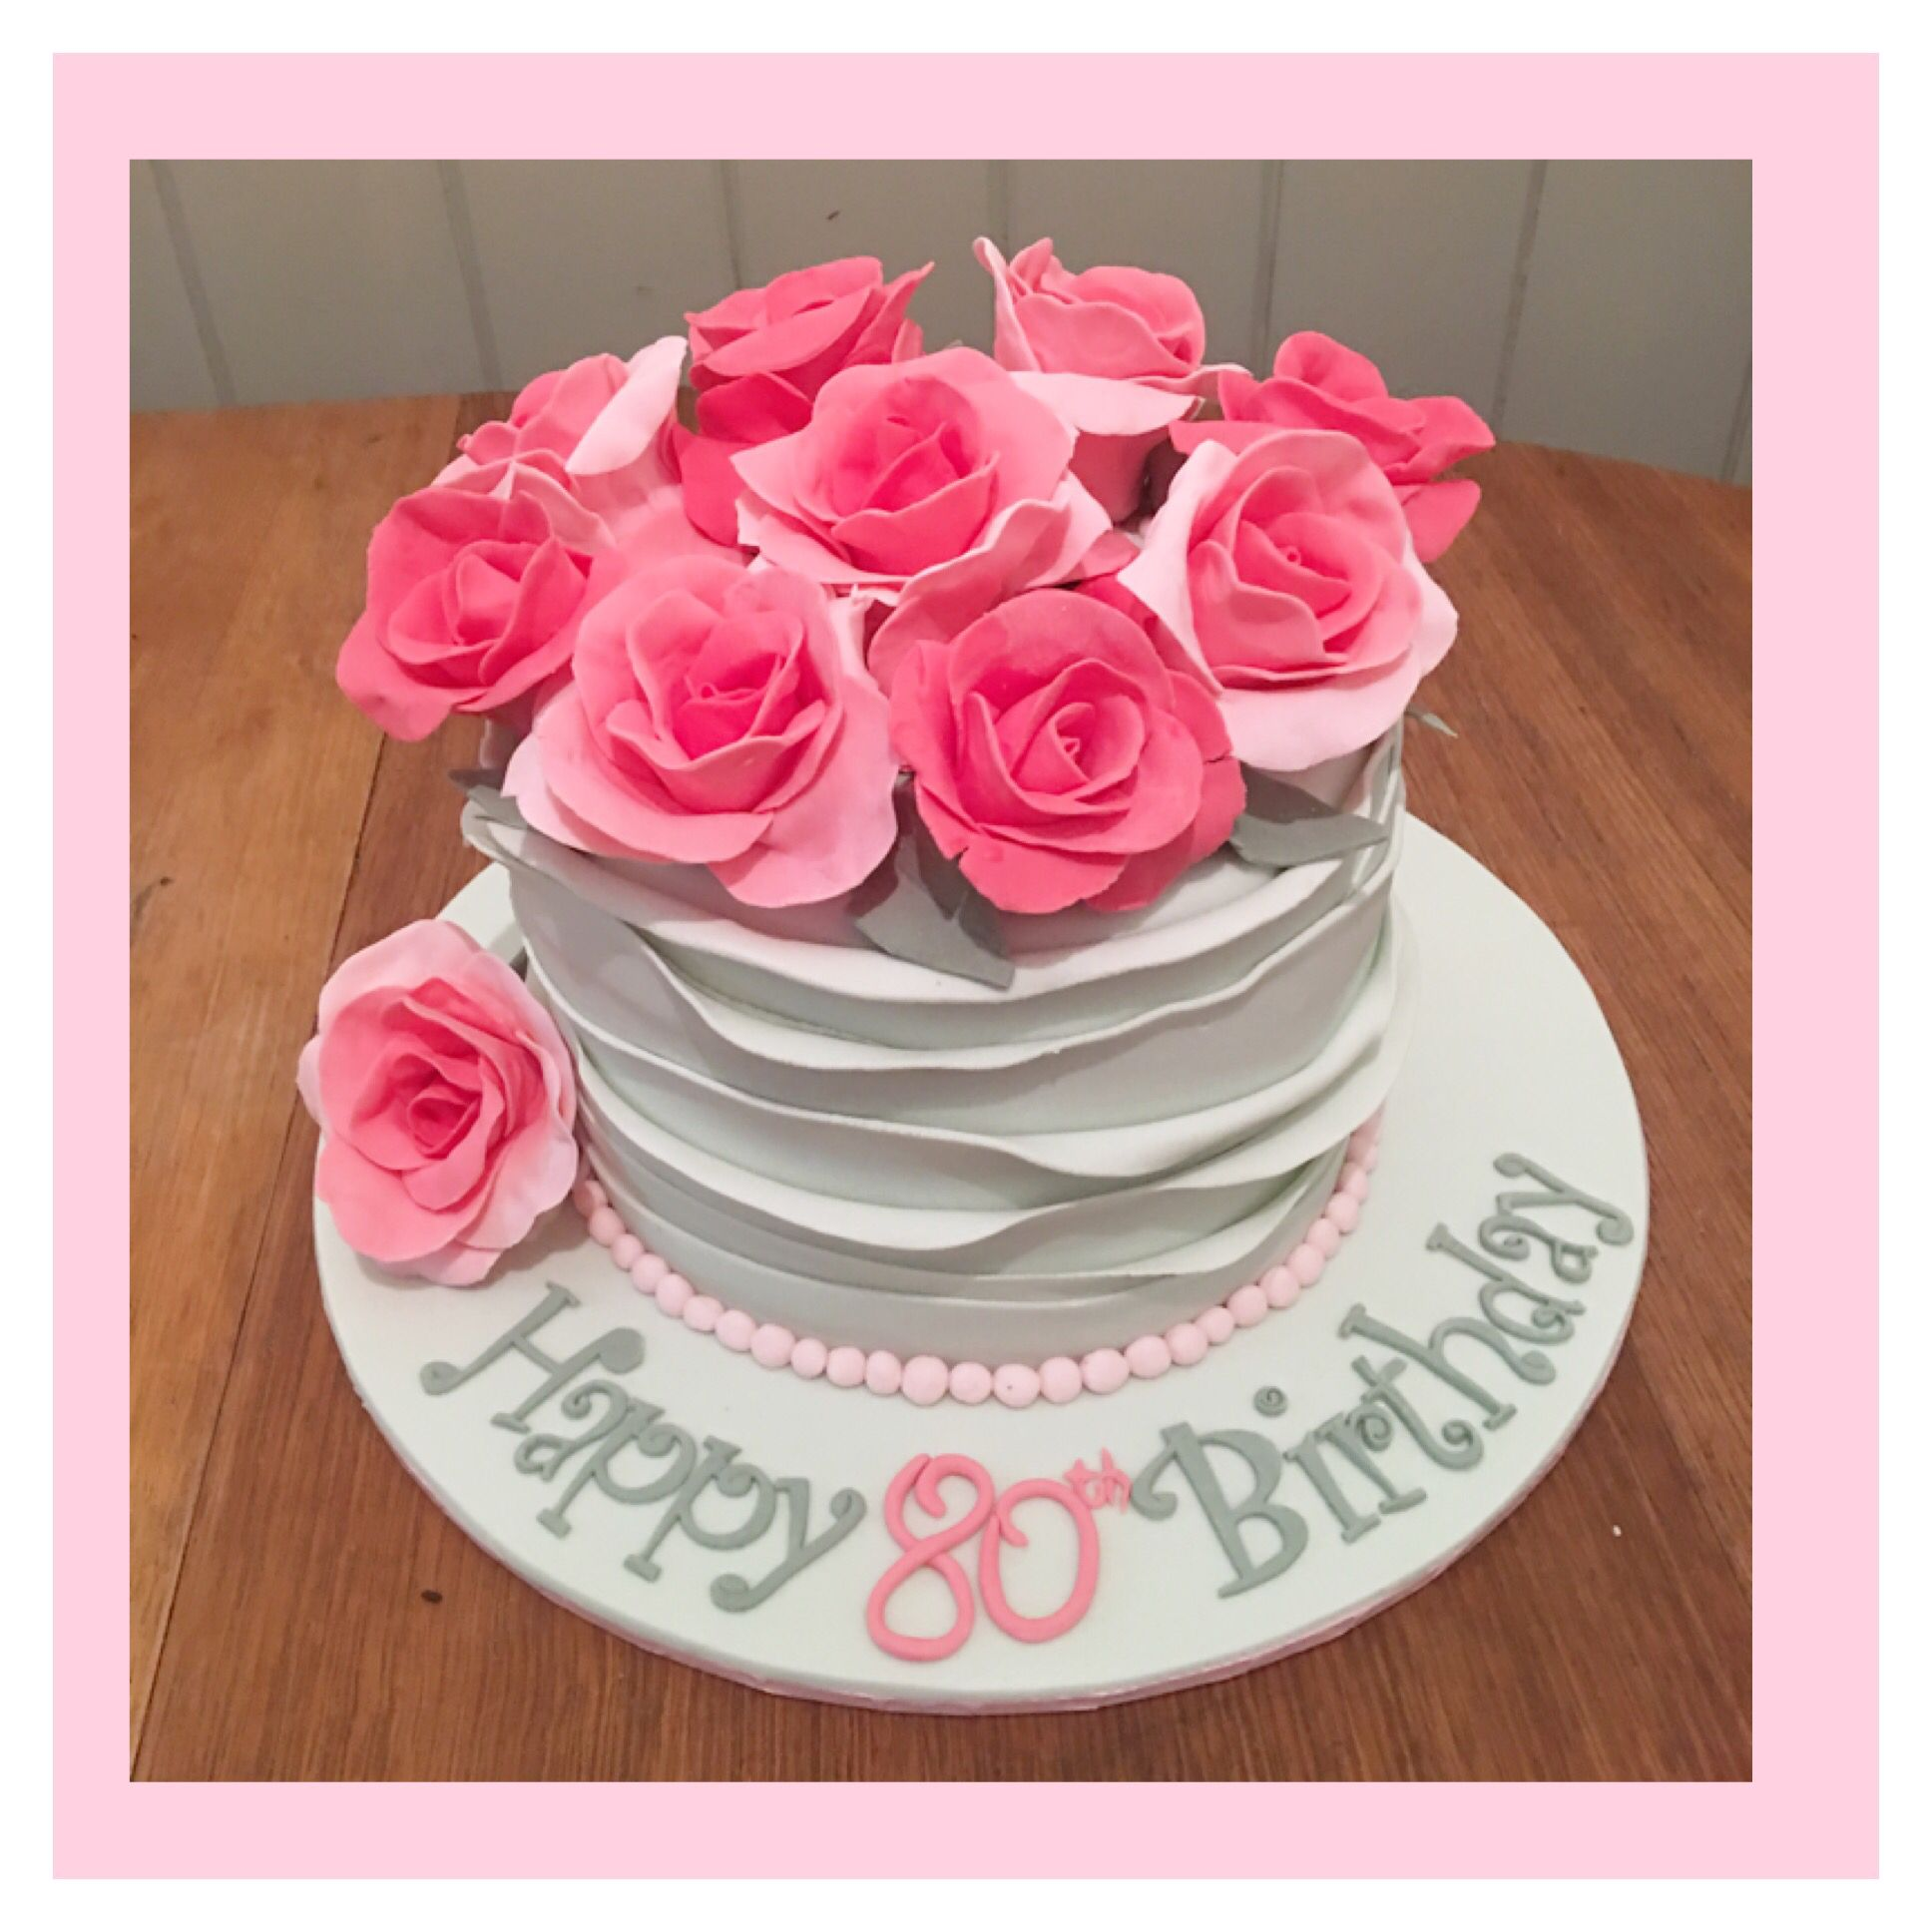 80 80th ladies lady birthday cake pink roses wrap wrapped